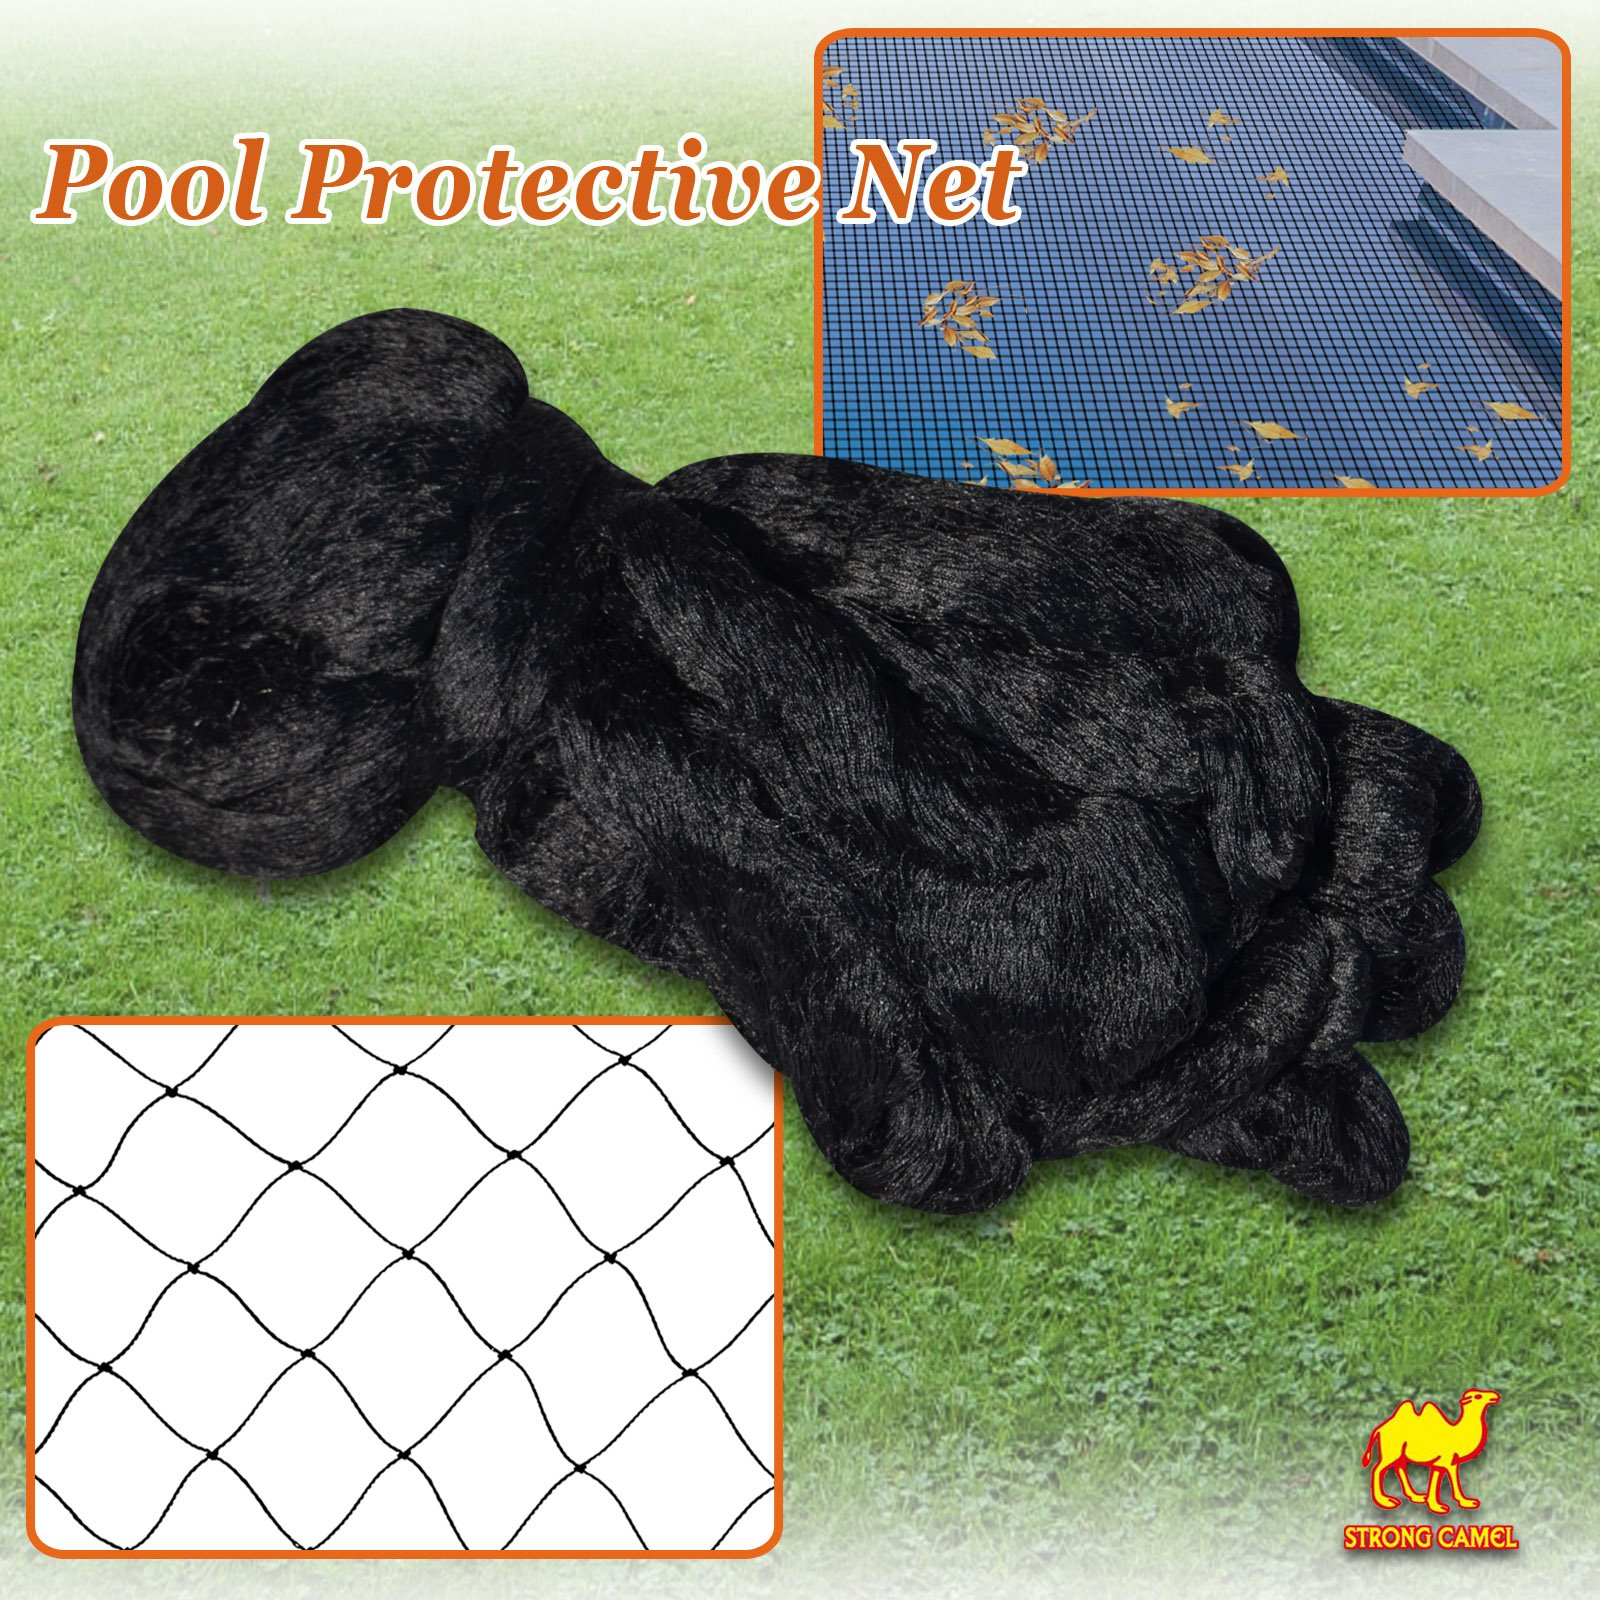 Strong Camel 14x14' 28x28' 28x45' Pool Netting Net Tub Mesh Cover Pond Protective Floating (14'x14')